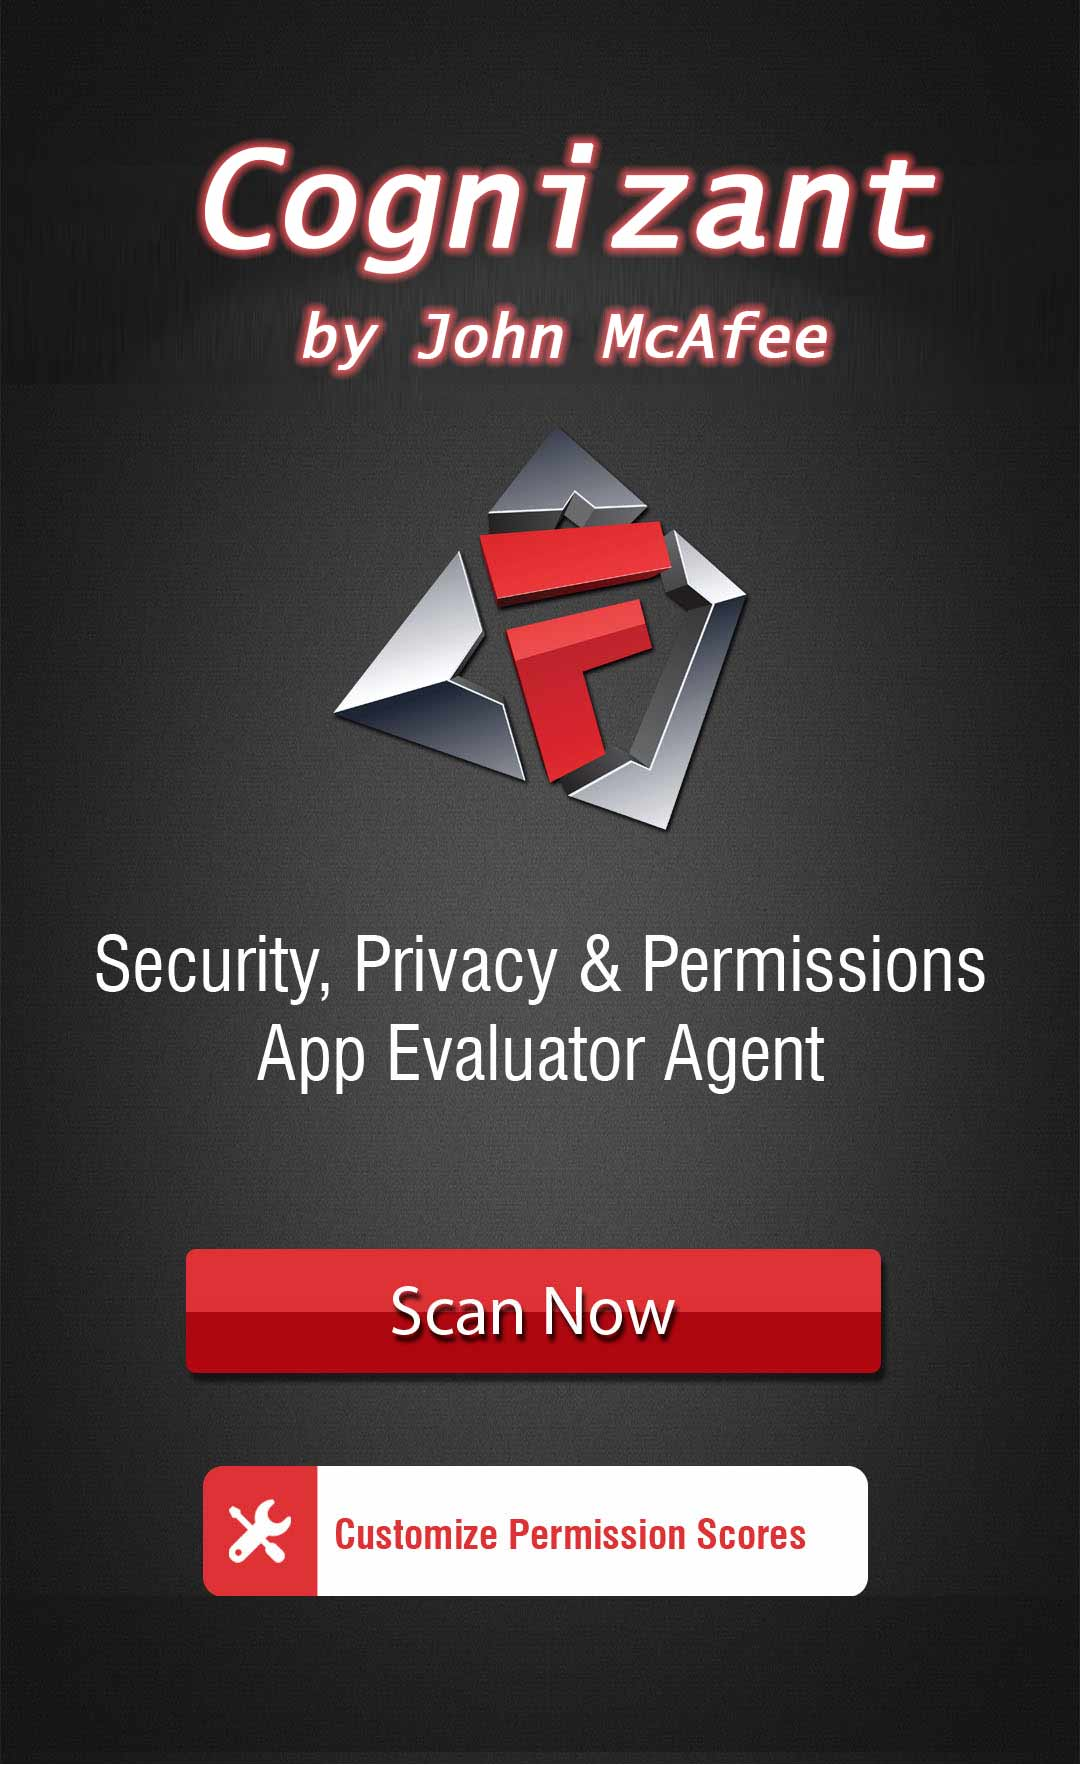 John McAfee has had enough of excessive app permissions - introduces